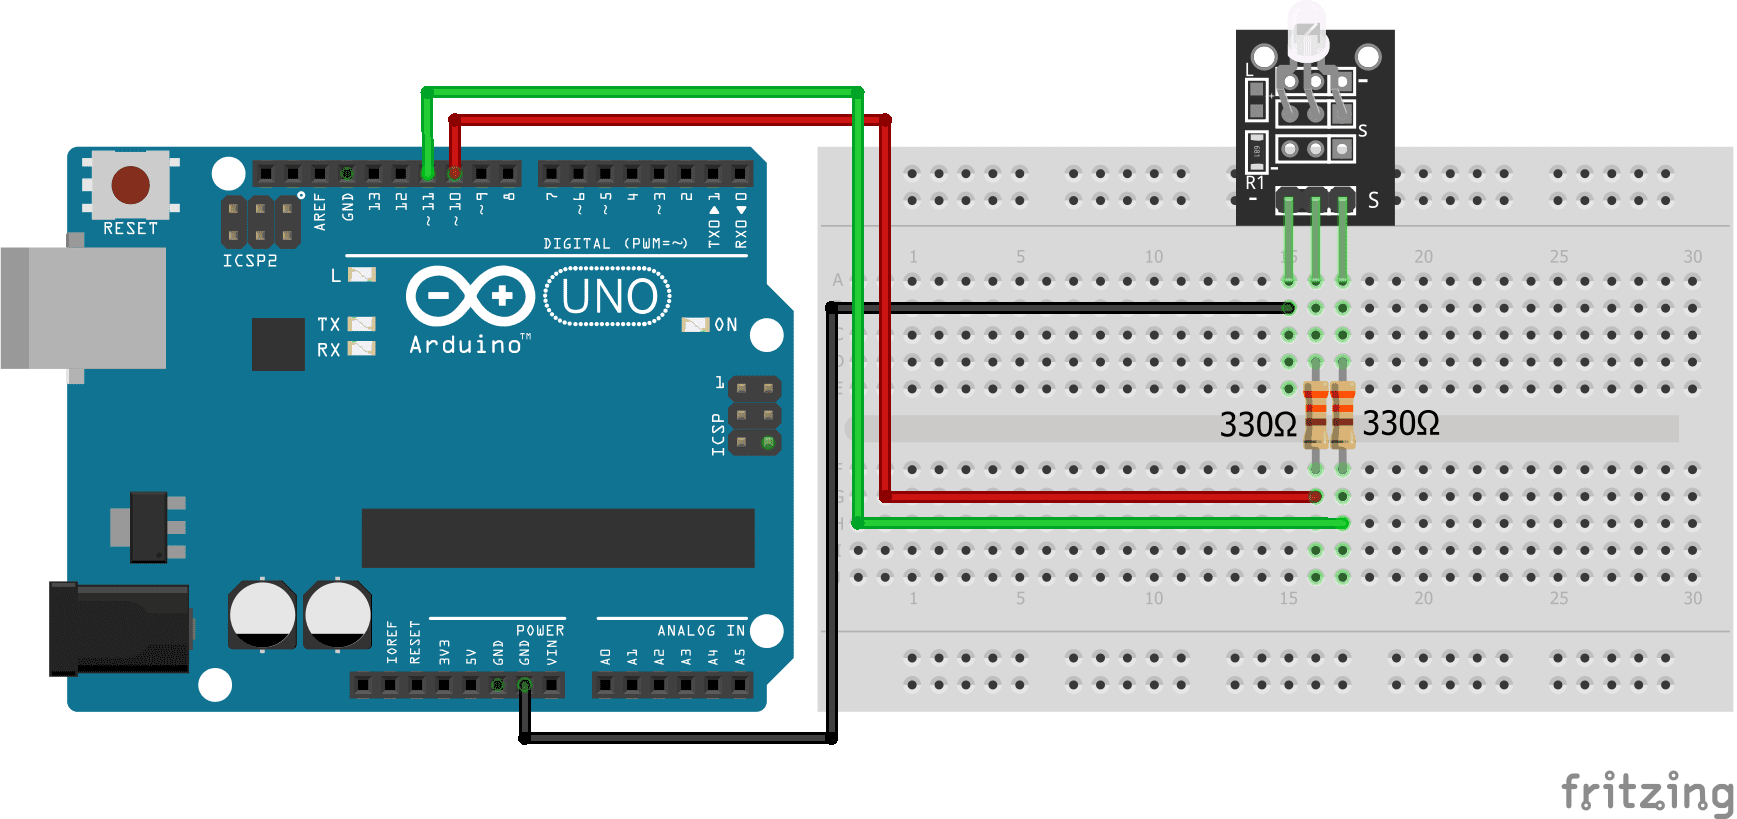 Two-color LED KY-011 Arduino Uno